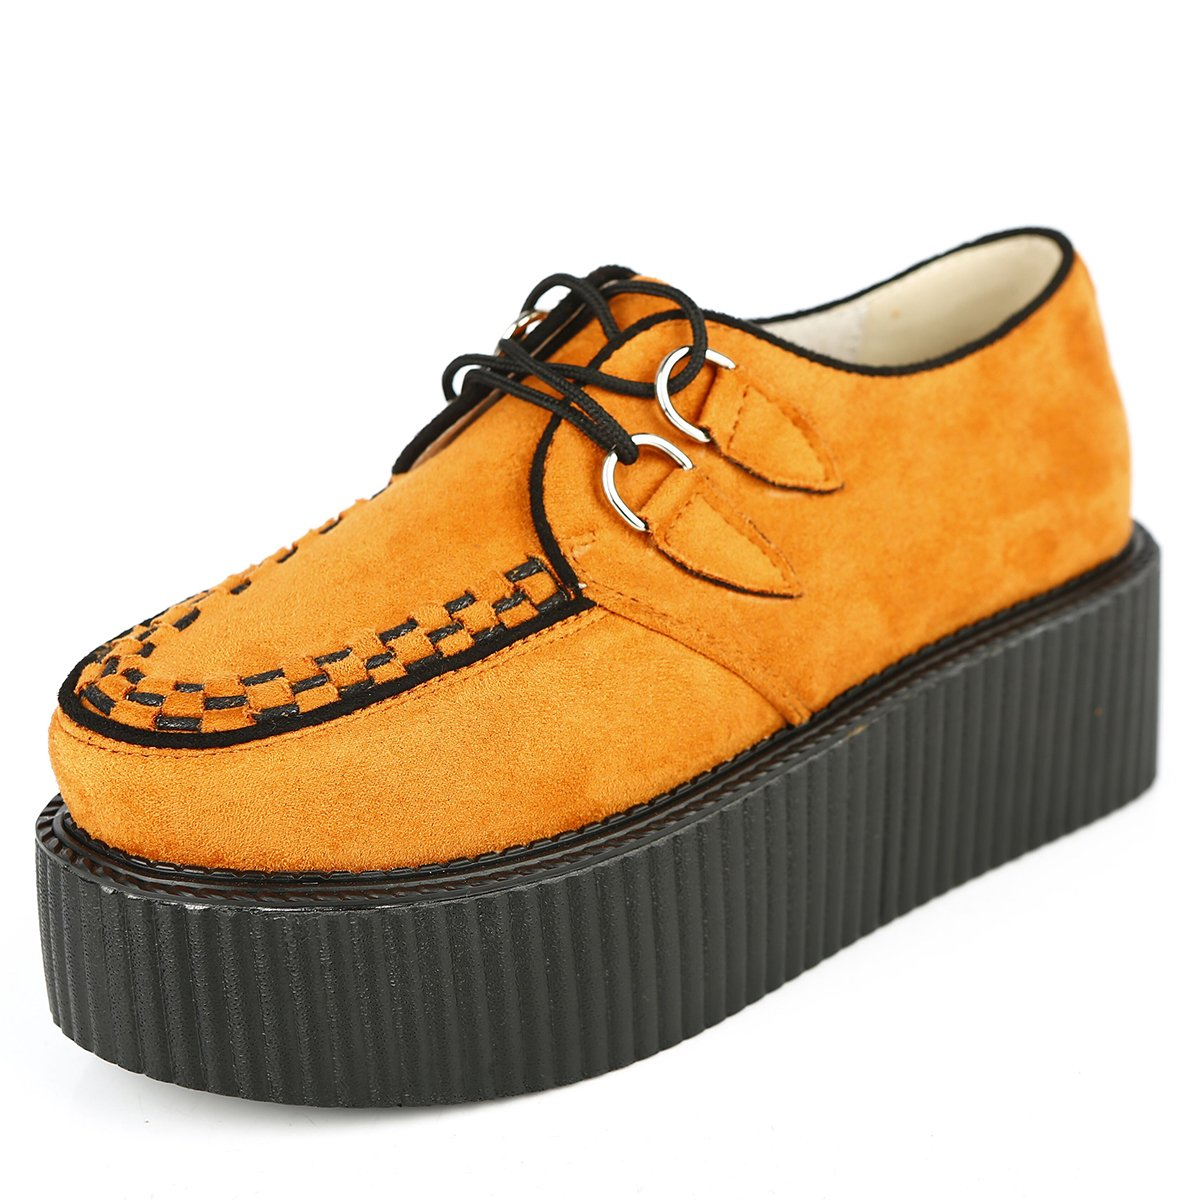 RoseG Femmes Lacets Plate Forme Gothique Lacets Punk Punk Creepers Casual B07CM4QY3V Chaussures Orange dfde708 - piero.space